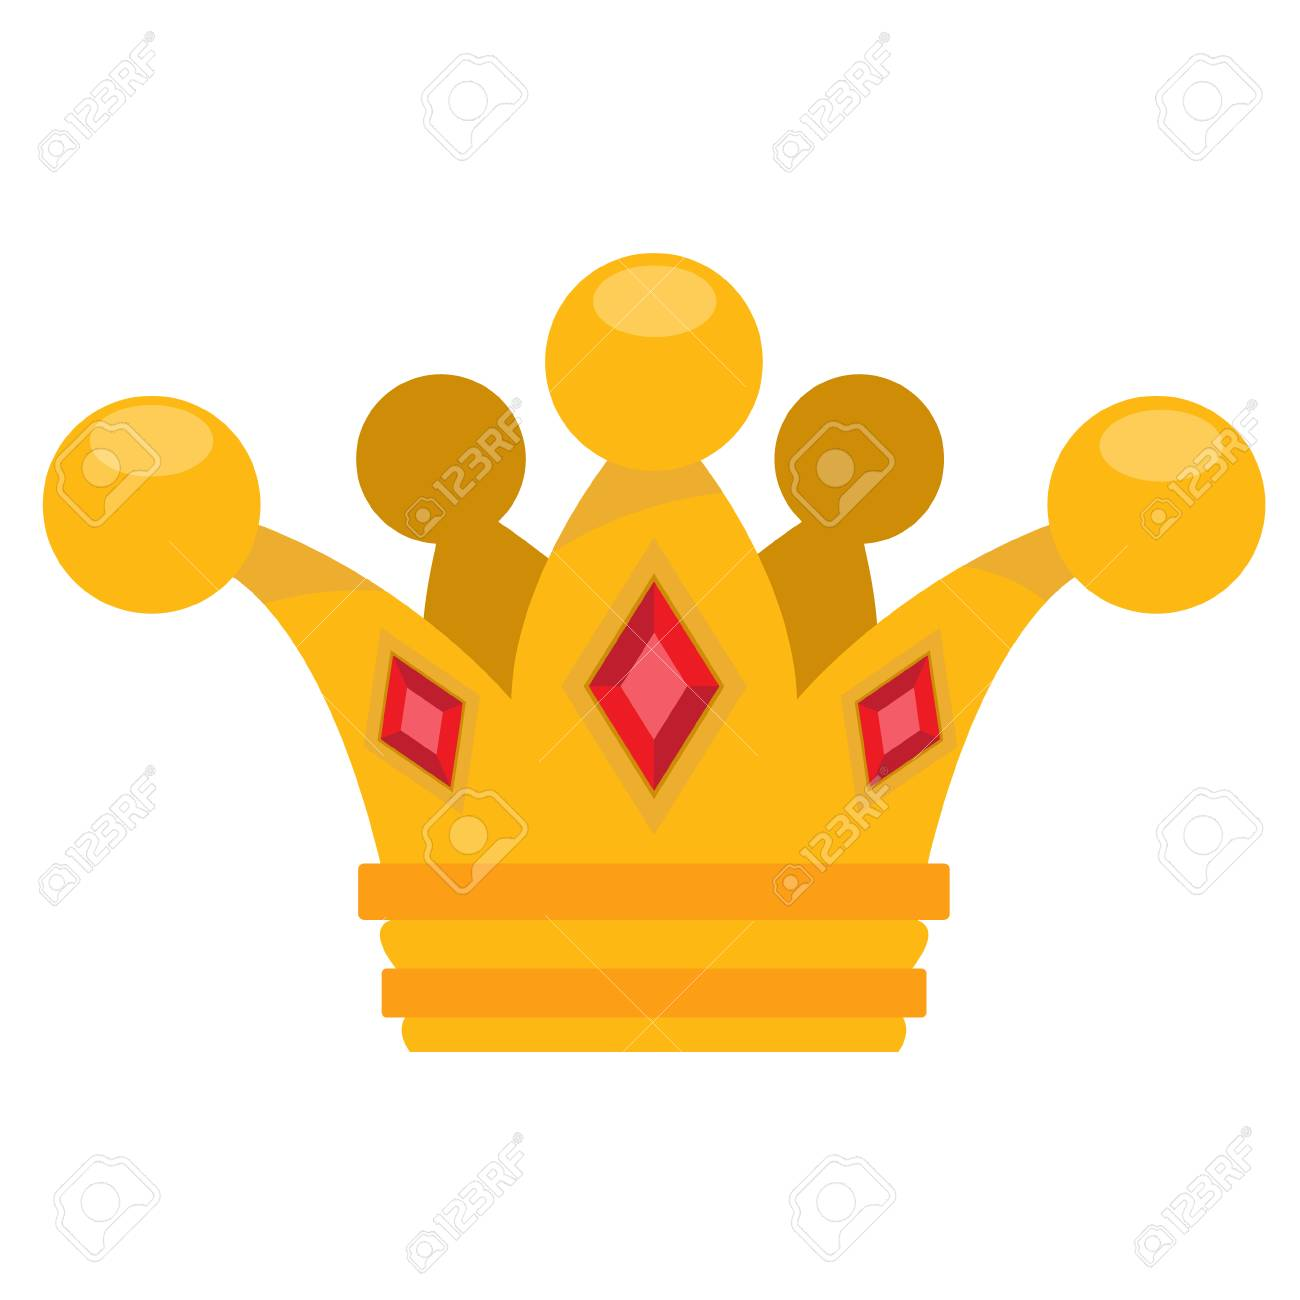 Gold Crown Logo Cartoon Headdress King Illustration For The Royalty Free Cliparts Vectors And Stock Illustration Image 70842432 Cartoon medieval characters fairy tale king queen vector. gold crown logo cartoon headdress king illustration for the